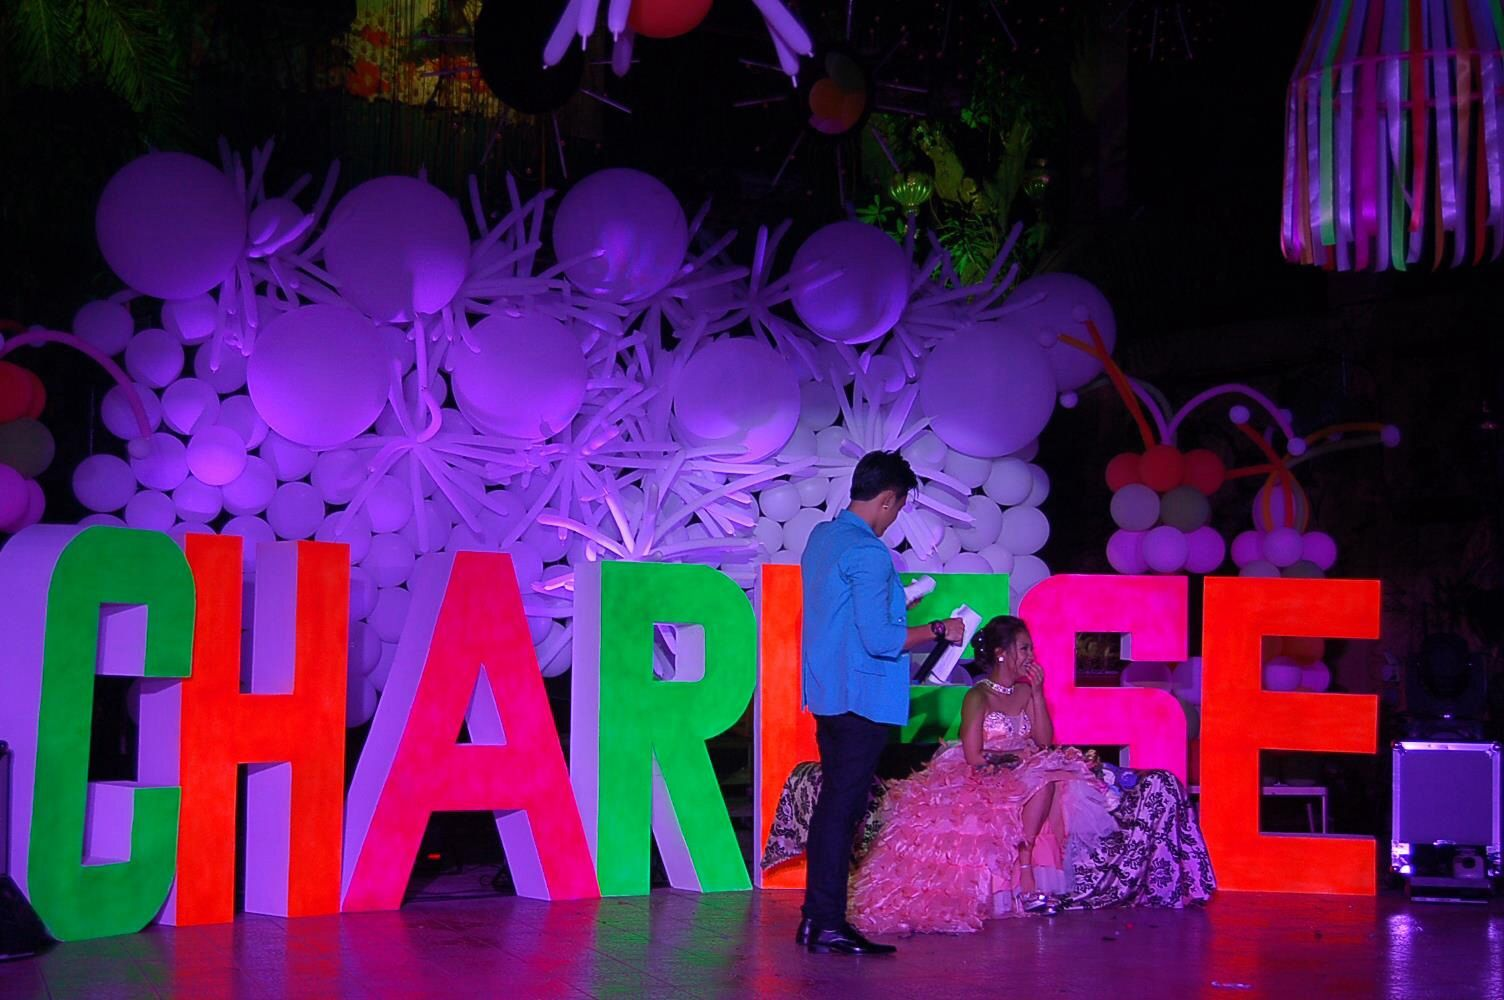 neon theme party debut 18thbirthday 6ftletterstandee